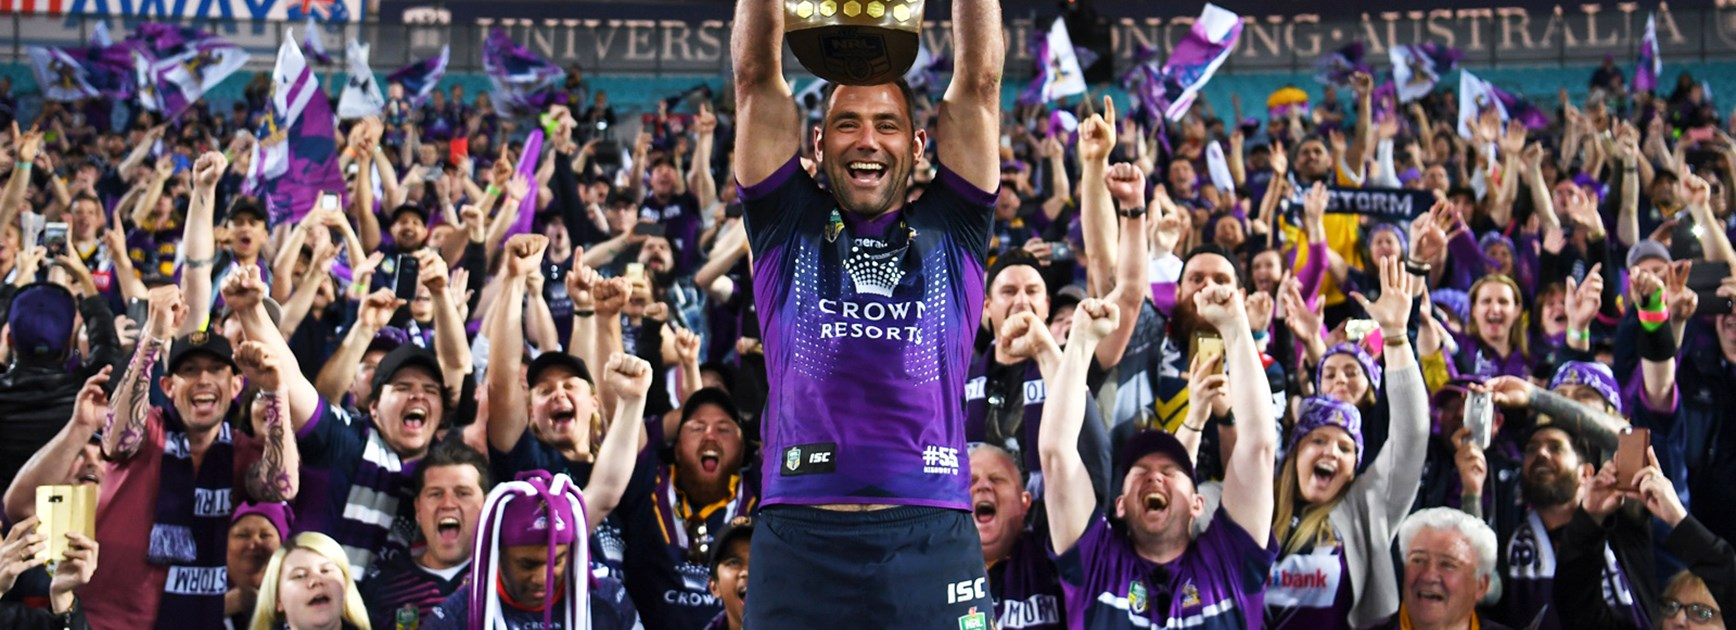 Cameron Smith after Melbourne's NRL Grand Final win.